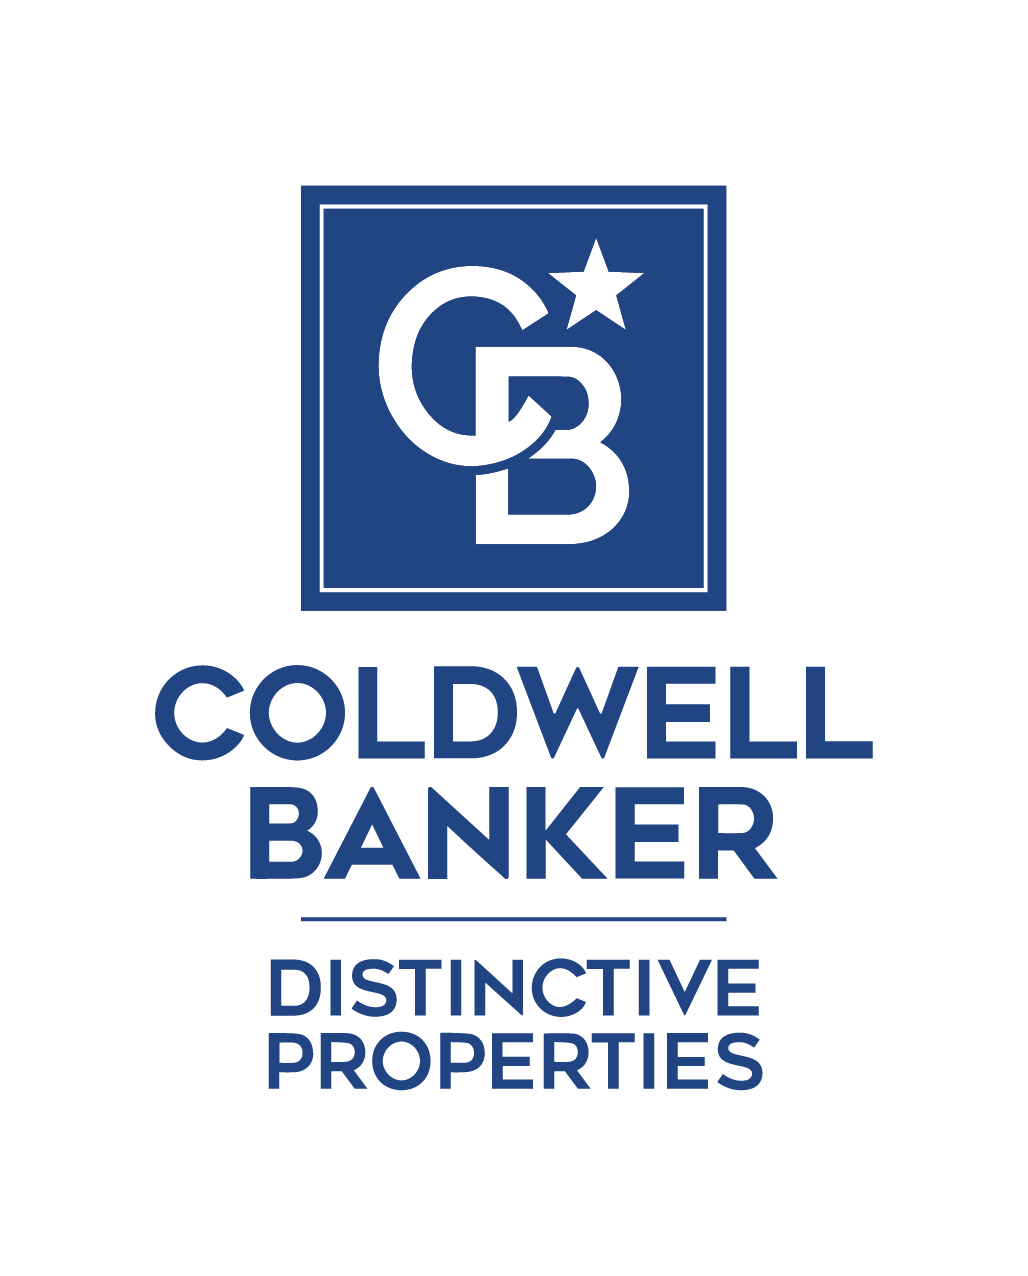 Rob Adolf - Coldwell Banker Distinctive Properties